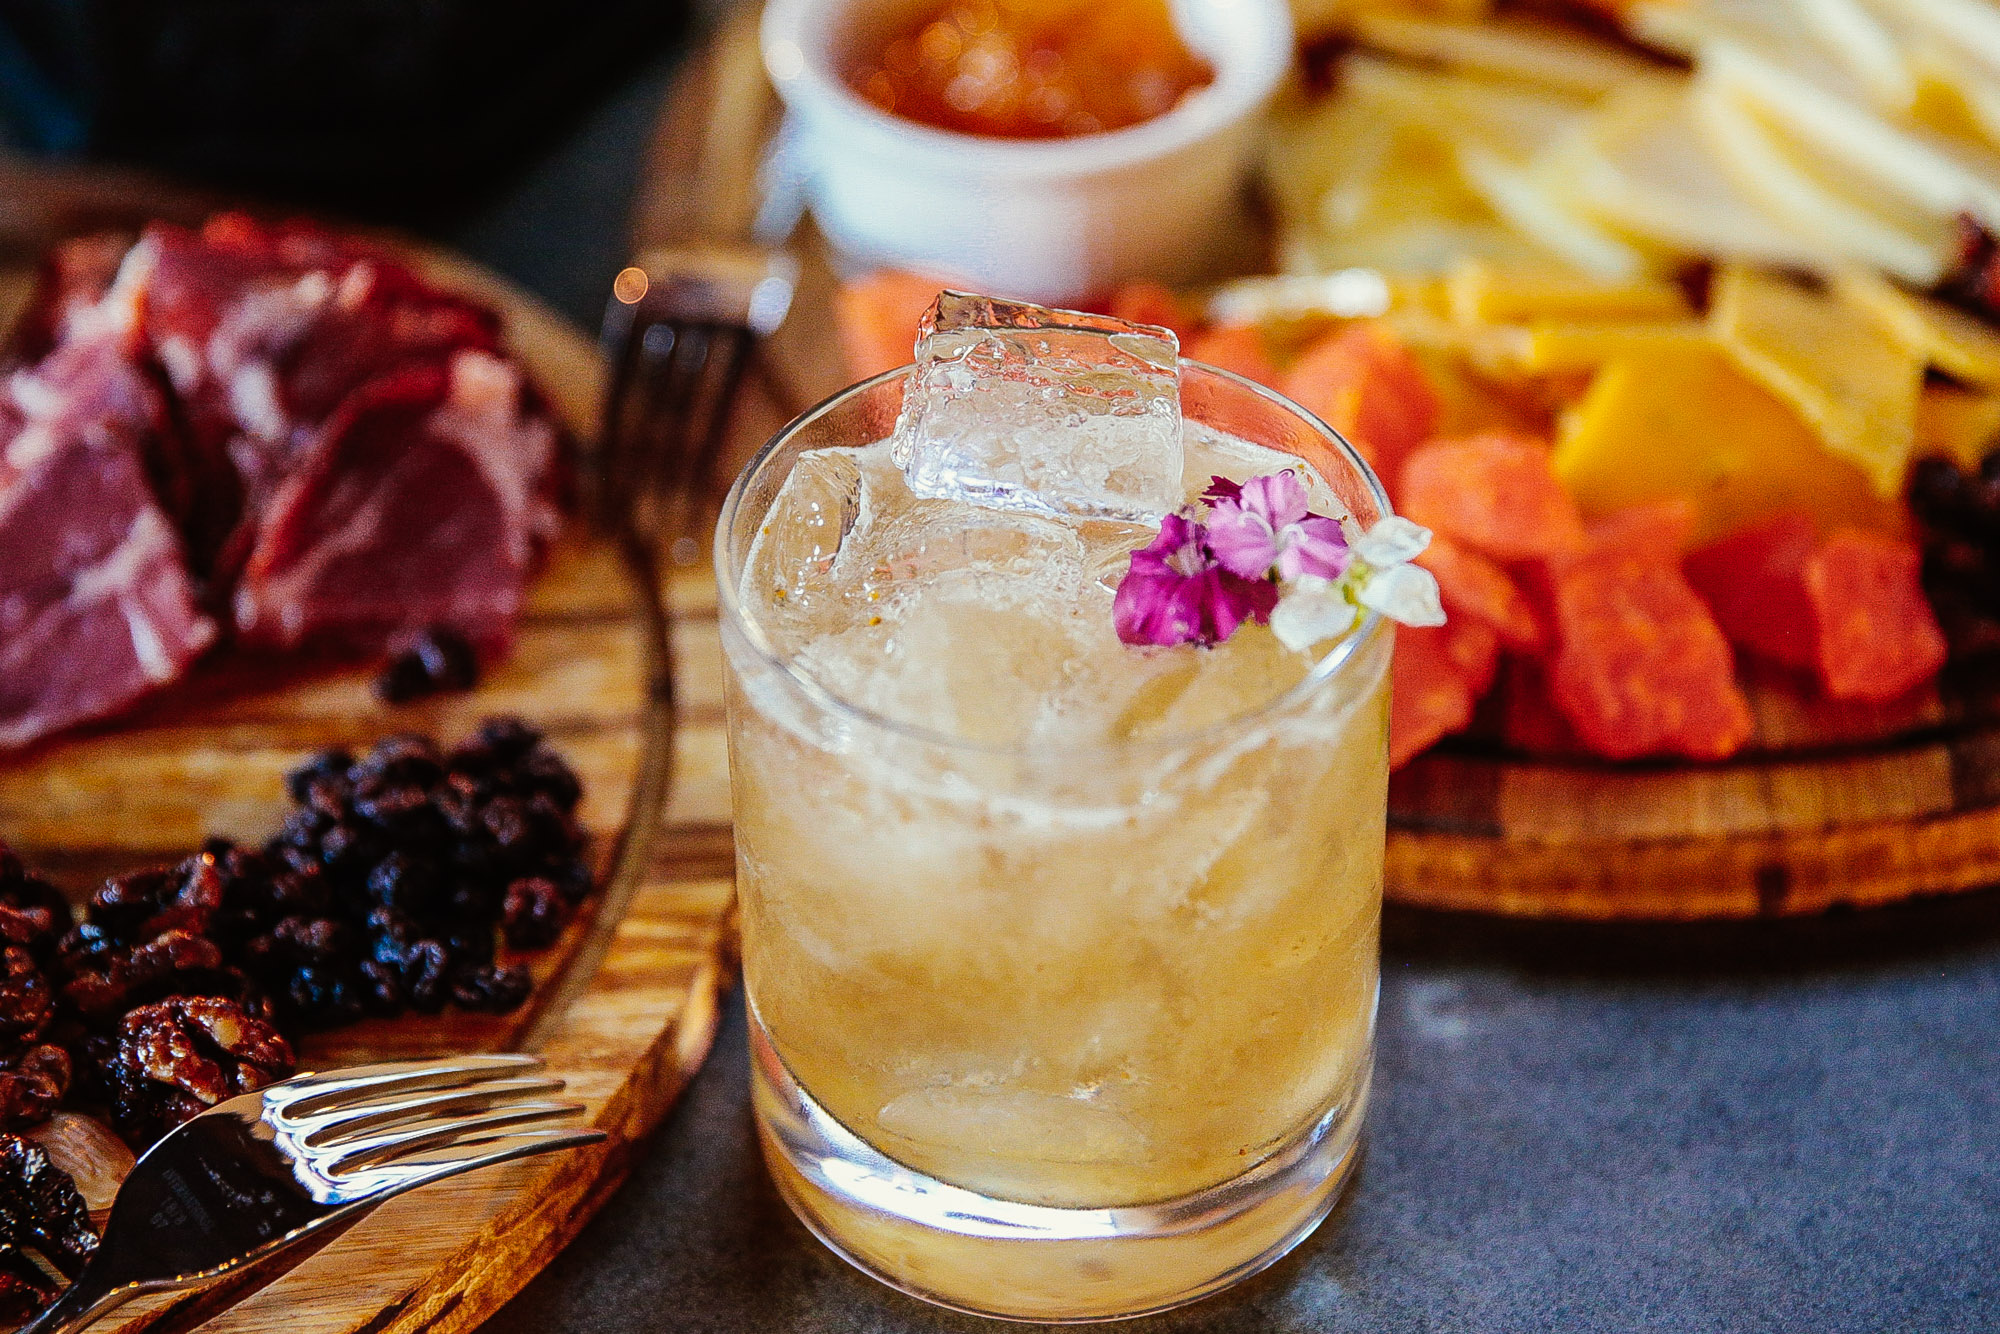 Savor a cocktail and charcuterie board at The Well Bar.